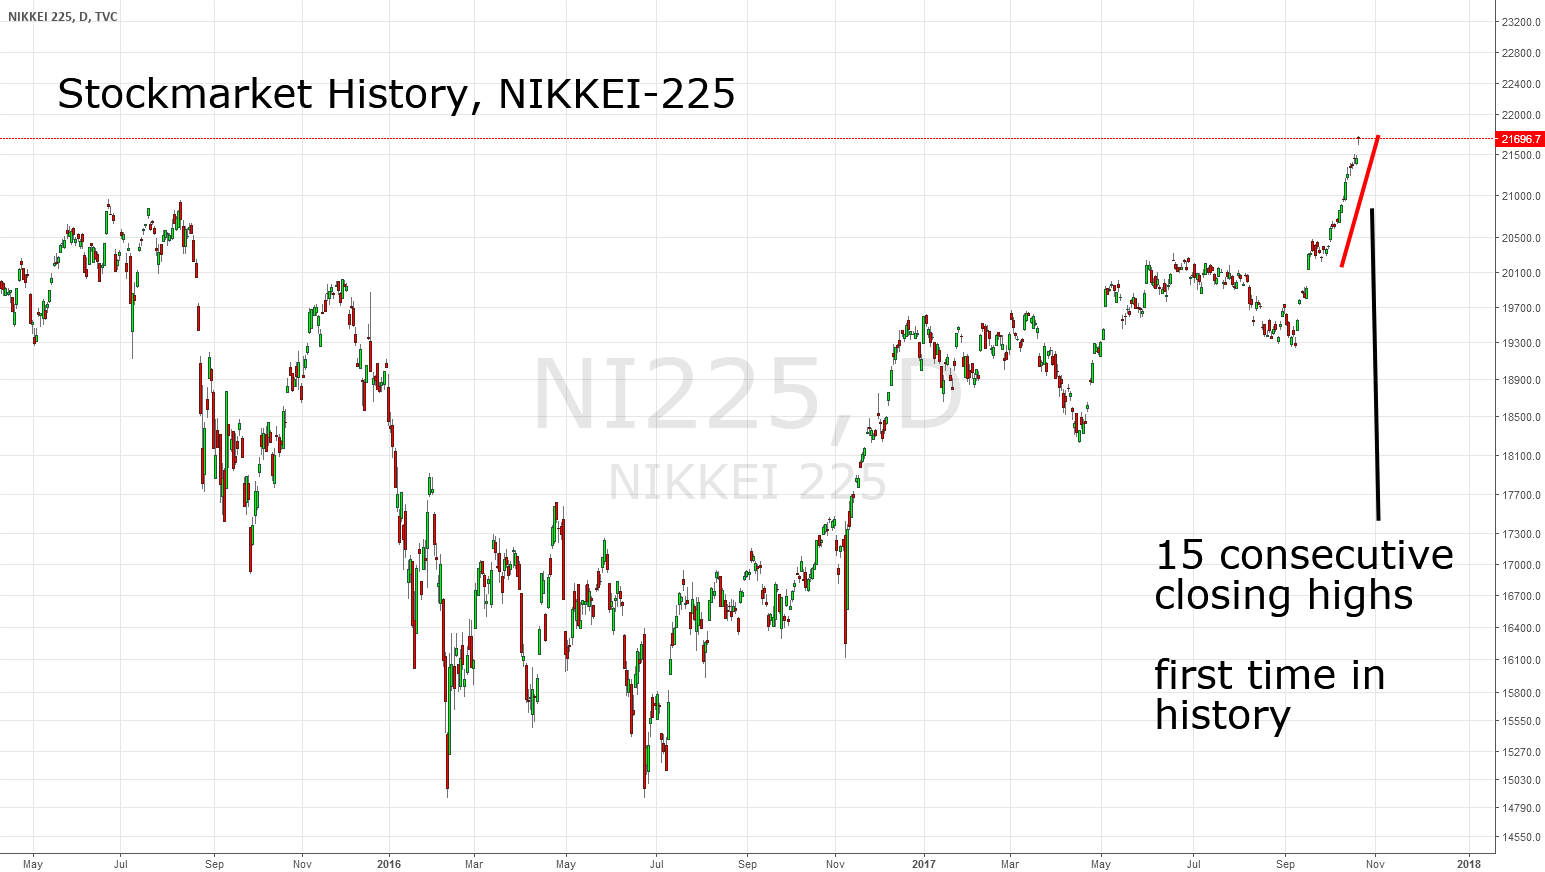 NIKKEI-225: 15 consecutive closing highs